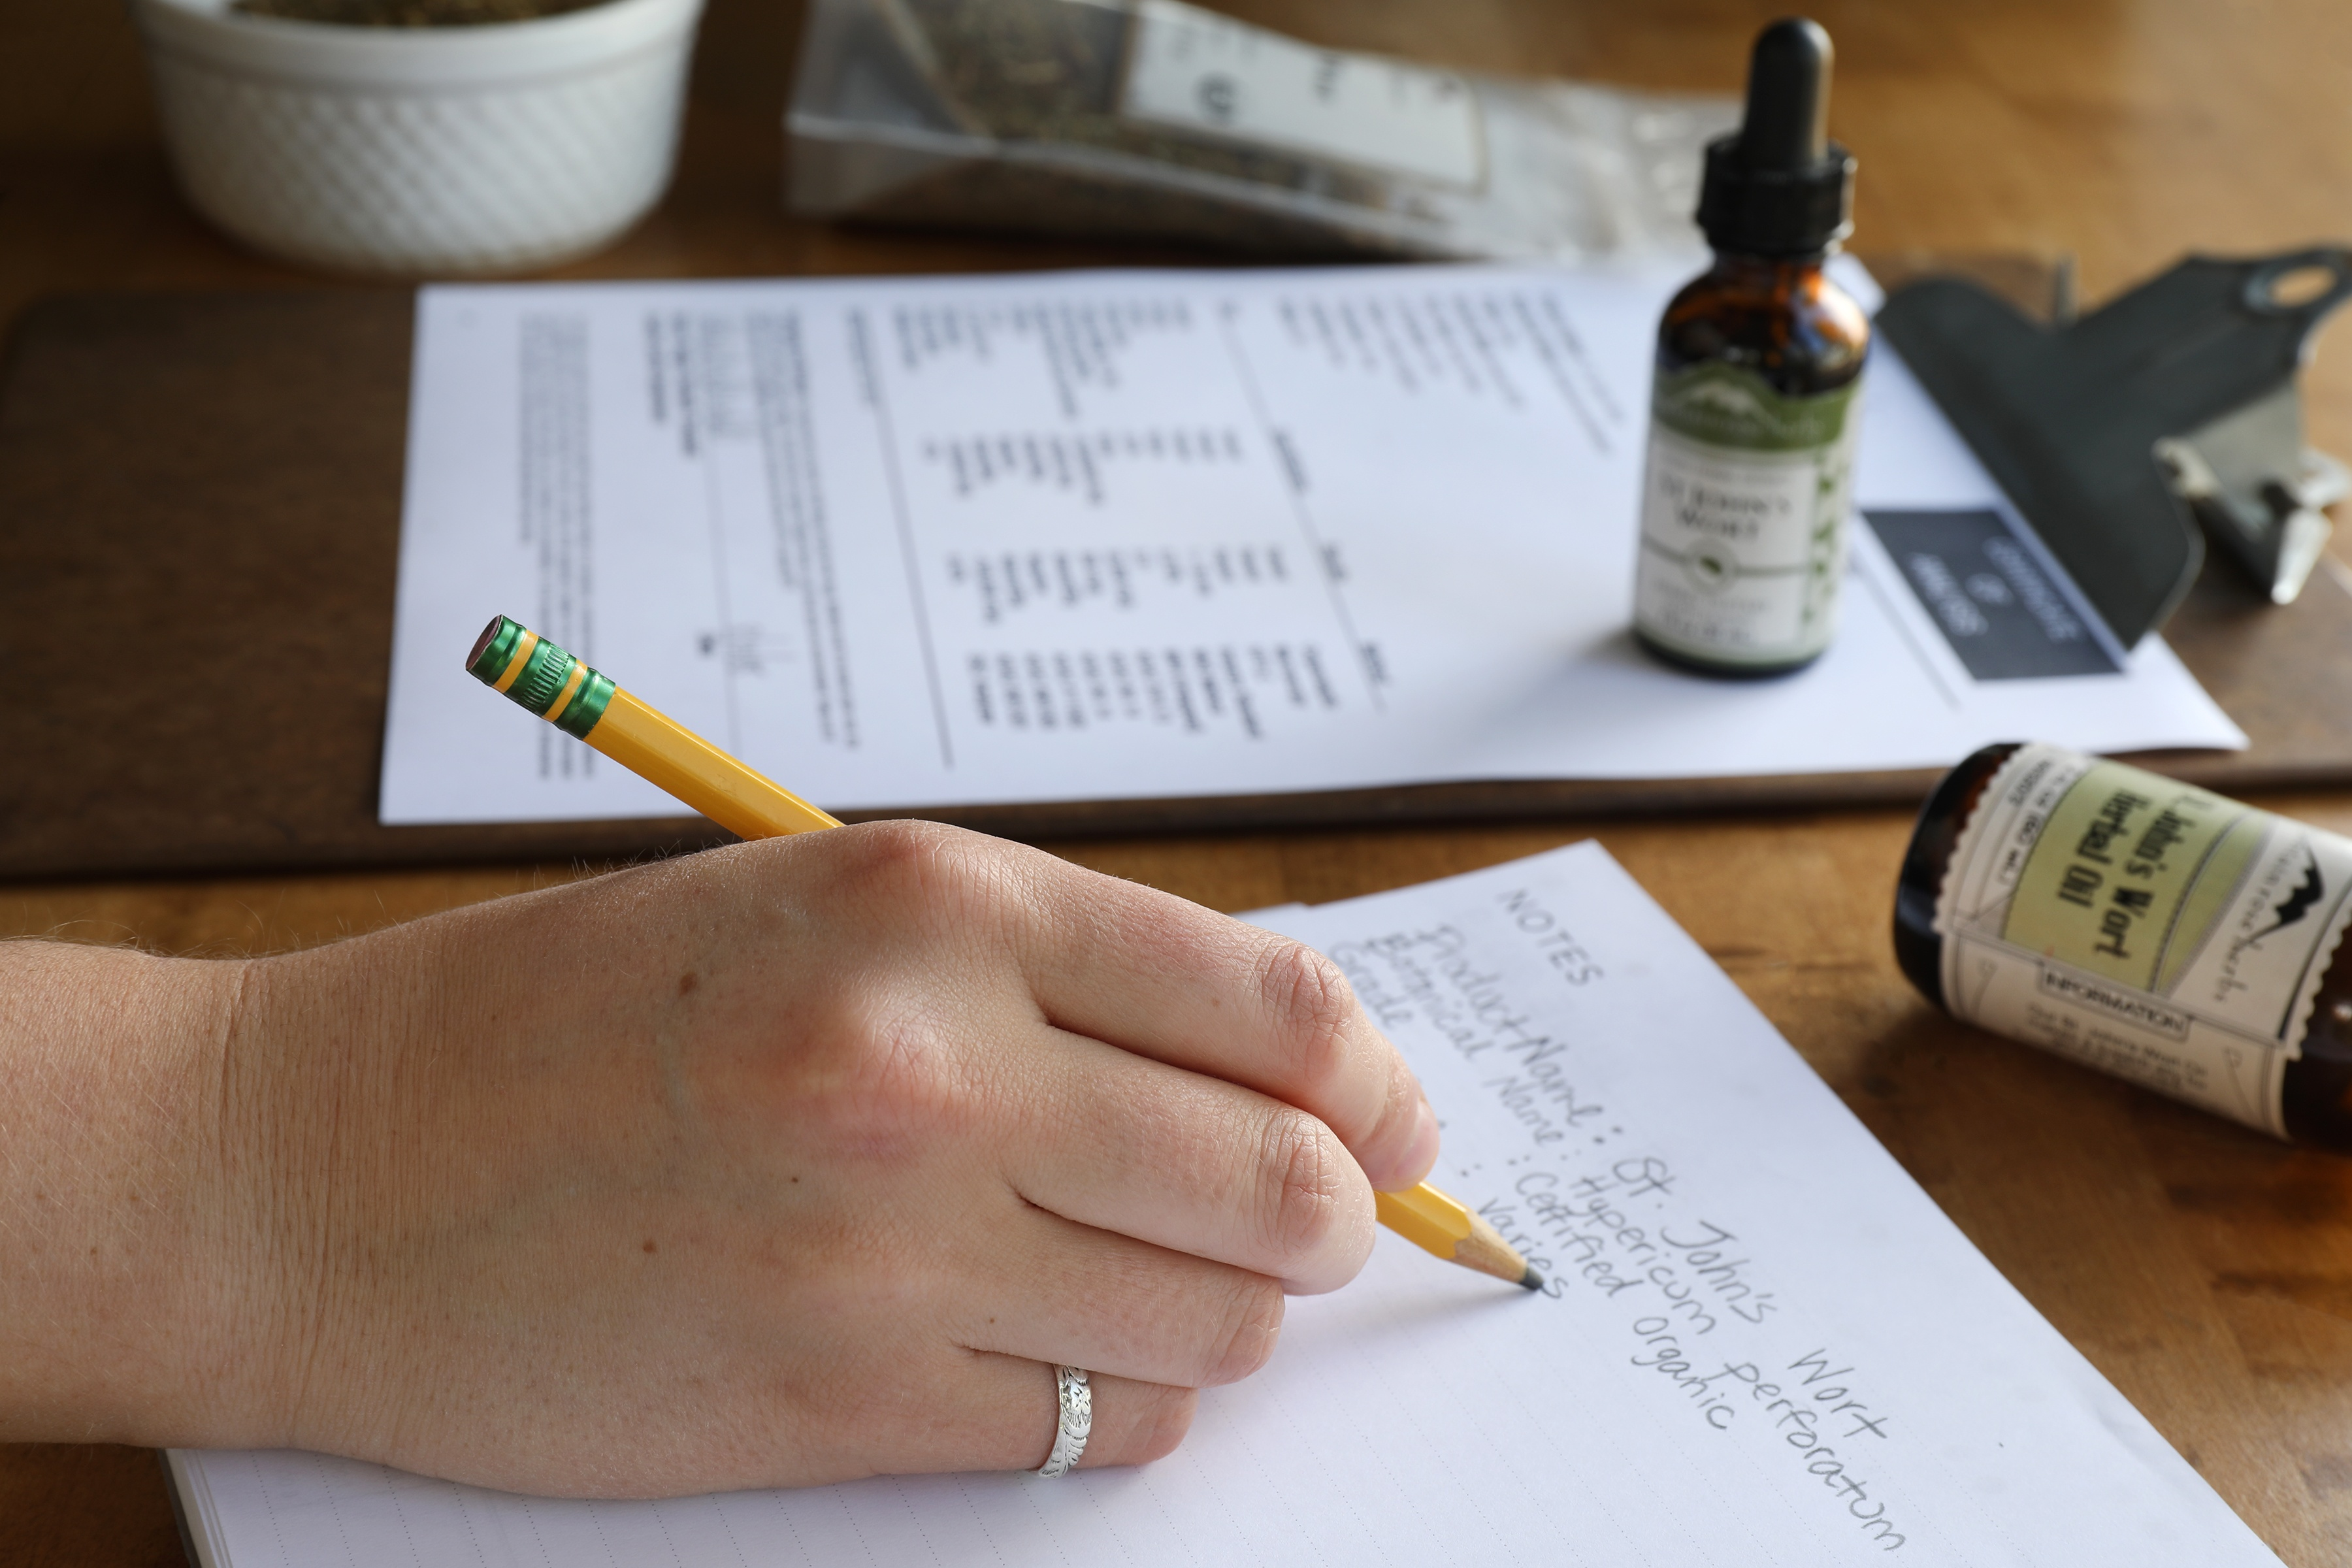 Hand holding pencil writing notes about Certificate of Analysis